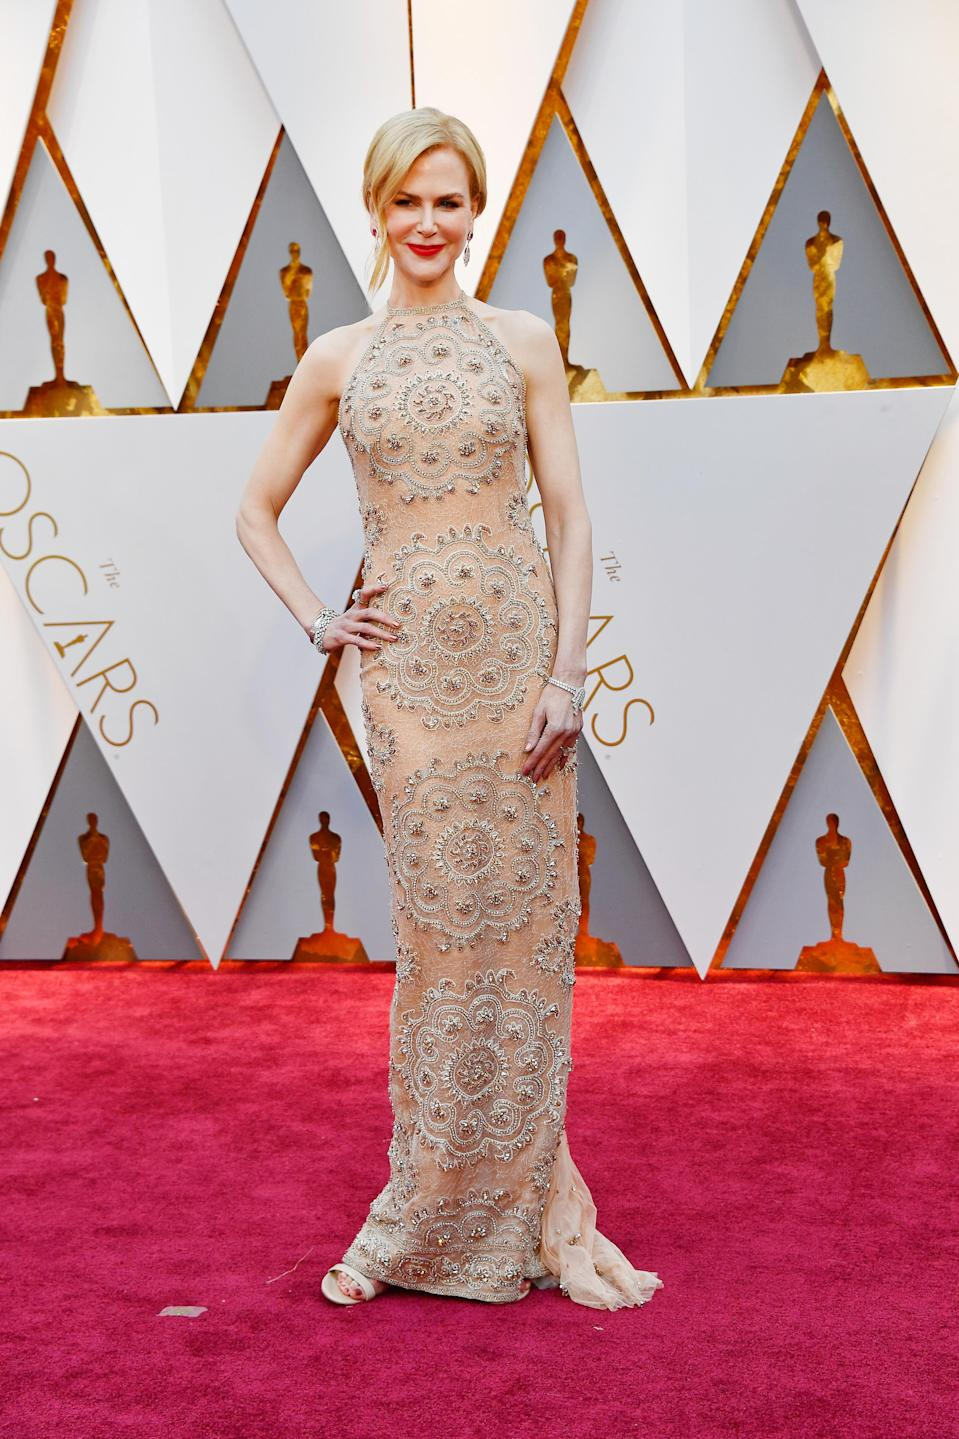 Nicole Kidman Stuns in Glamorous Nude Gown While Out to